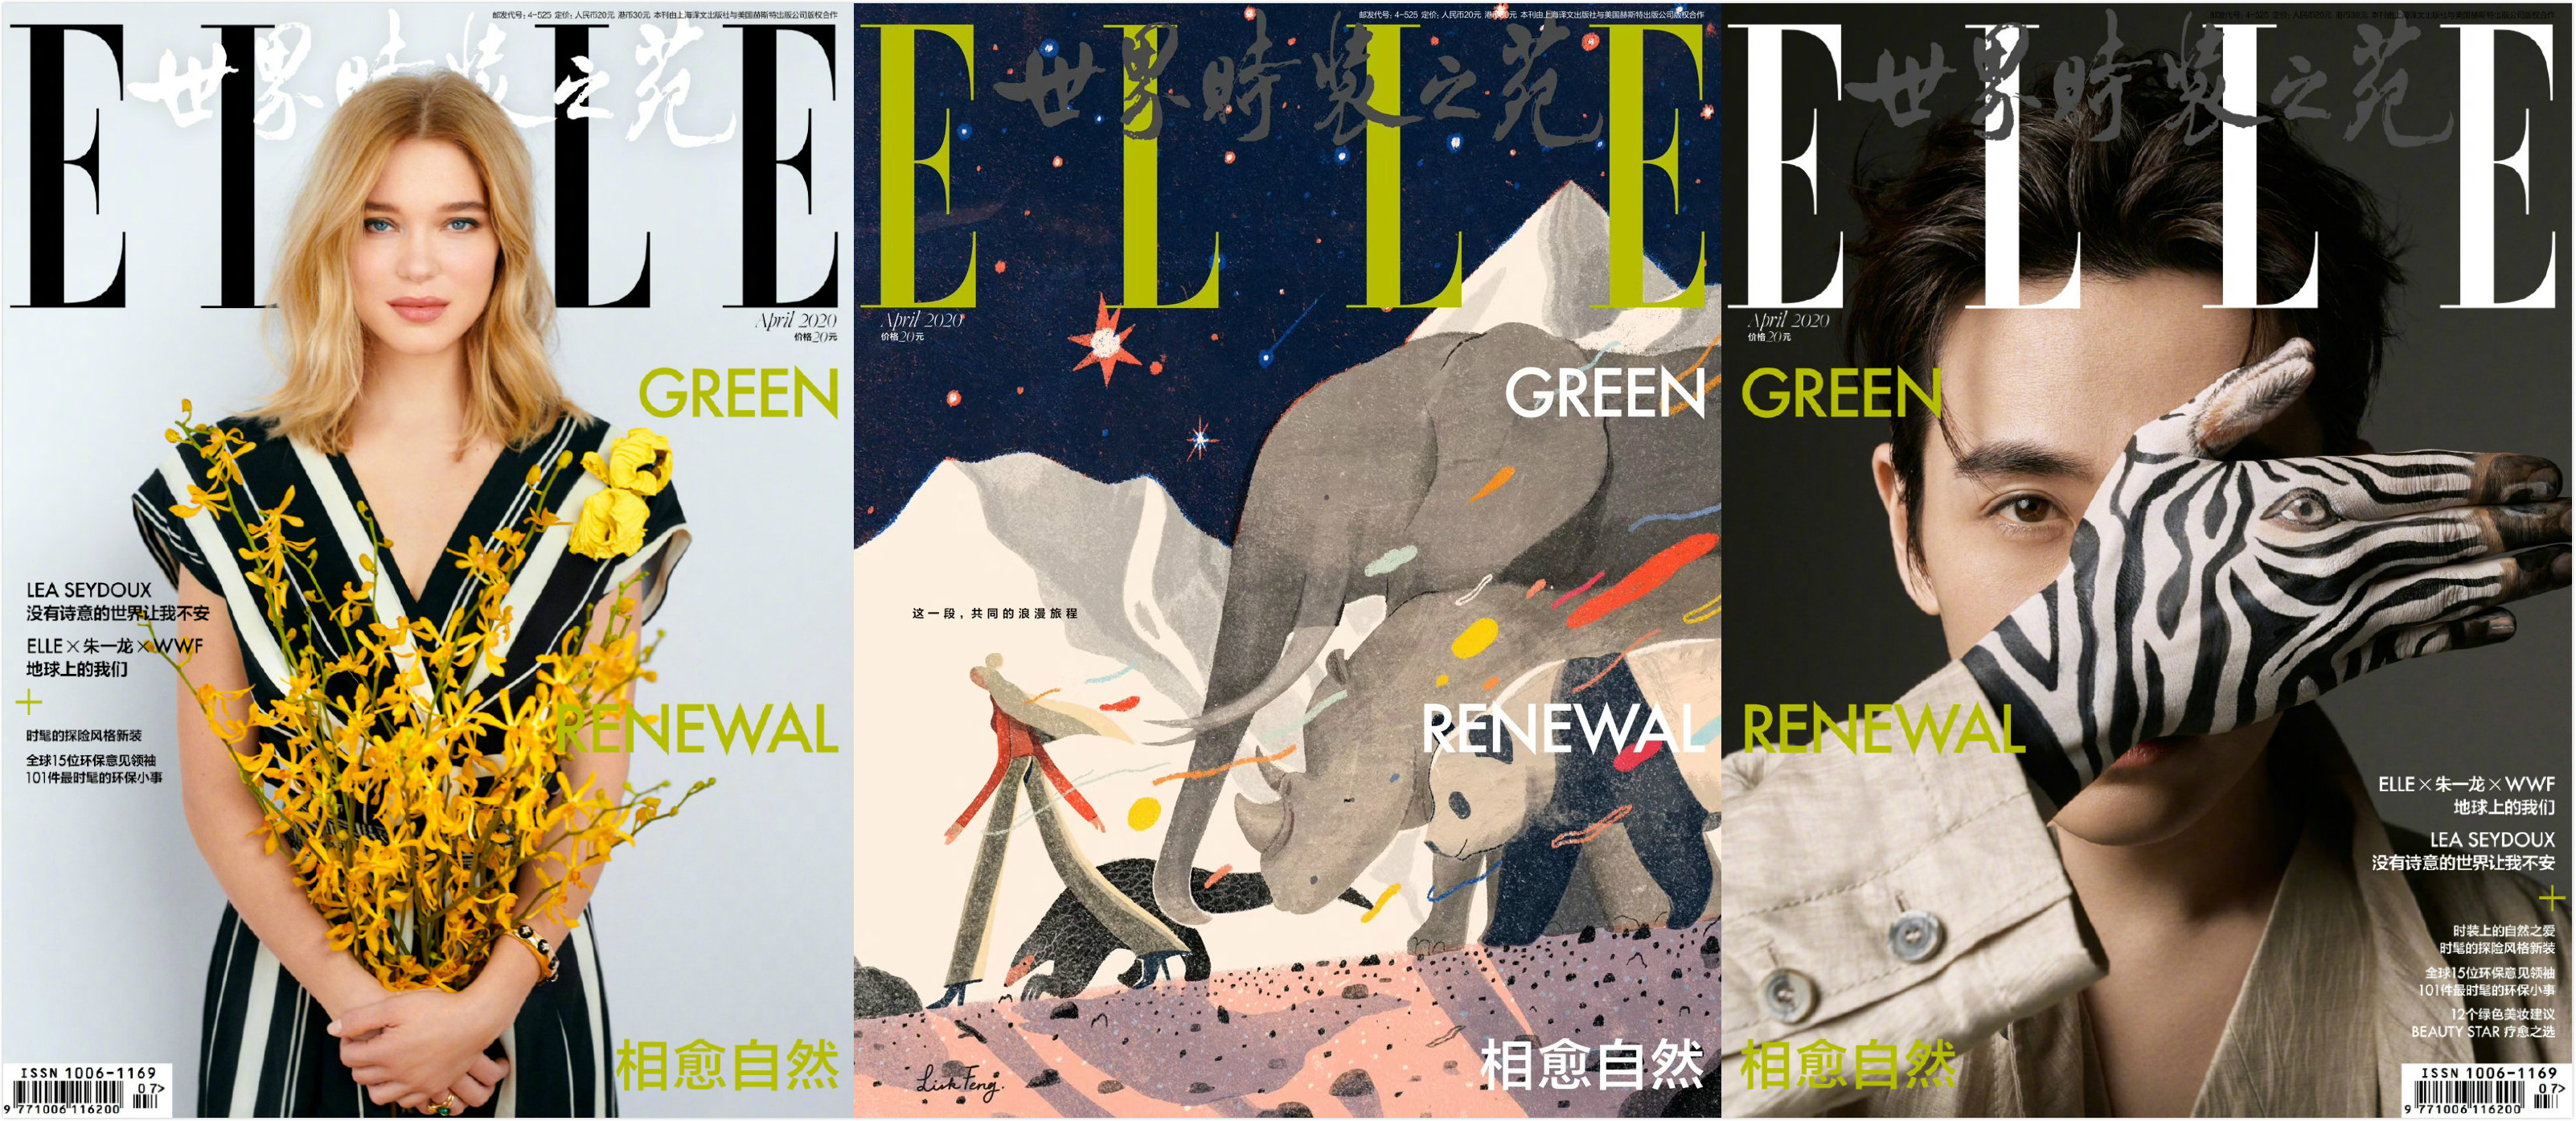 The covers of Elle China's April issue, featuring Léa Seydoux, fashion illusration and Zhu Yilong.